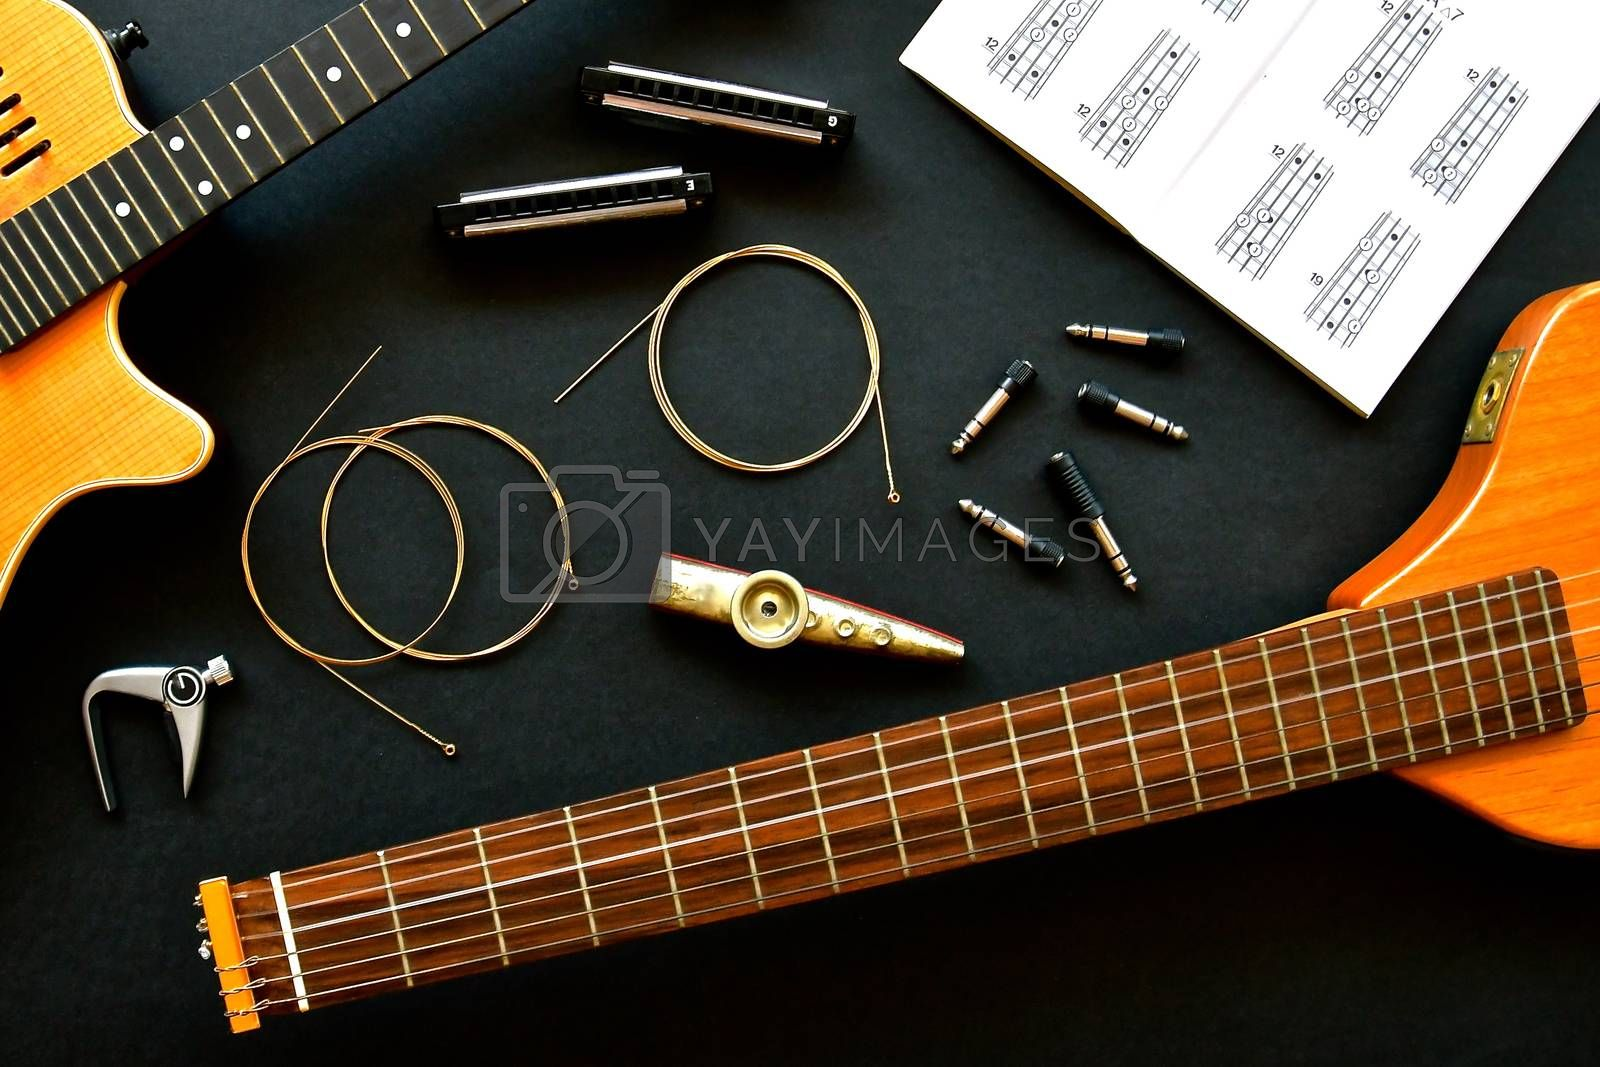 Music flatlay with an acoustic classical guitar, harmonicas, kazoo and coils of brass guitar strings.